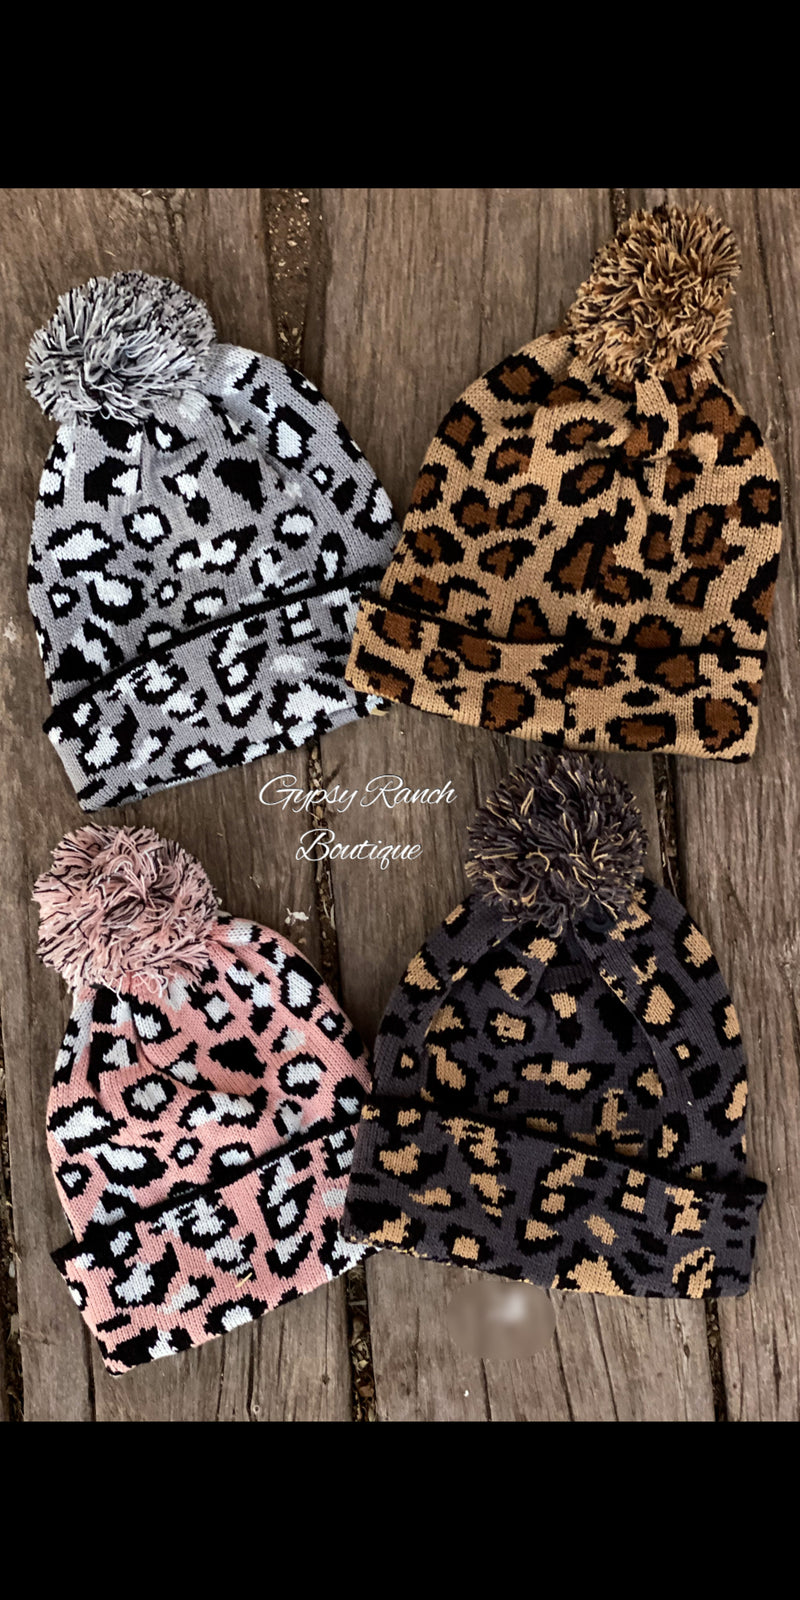 Black Friday Leopard Craze Beanie